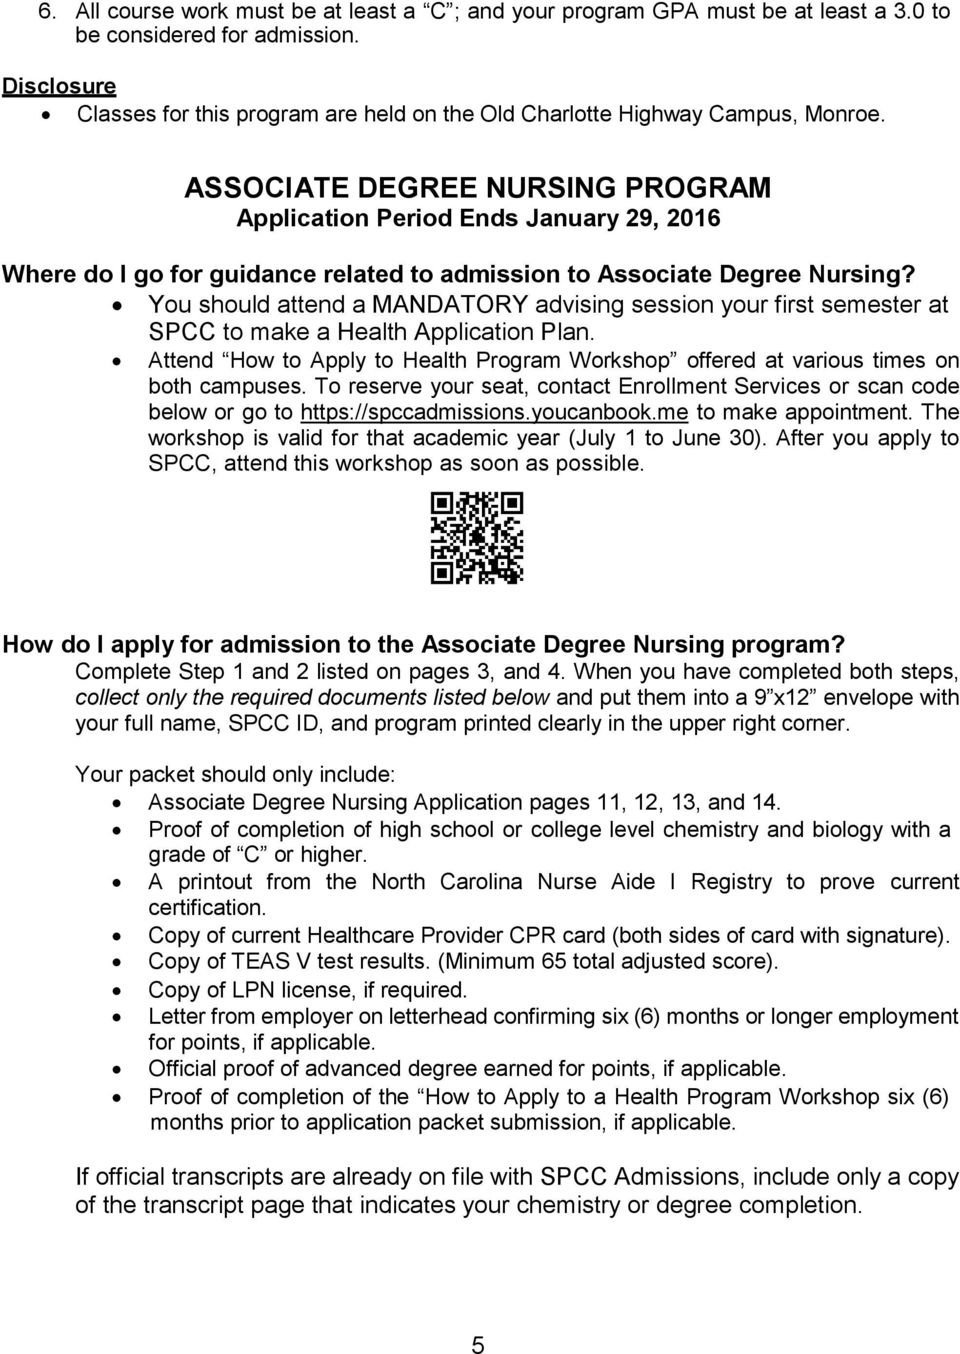 ASSOCIATE DEGREE NURSING PROGRAM Application Period Ends January 29, 2016 Where do I go for guidance related to admission to Associate Degree Nursing?